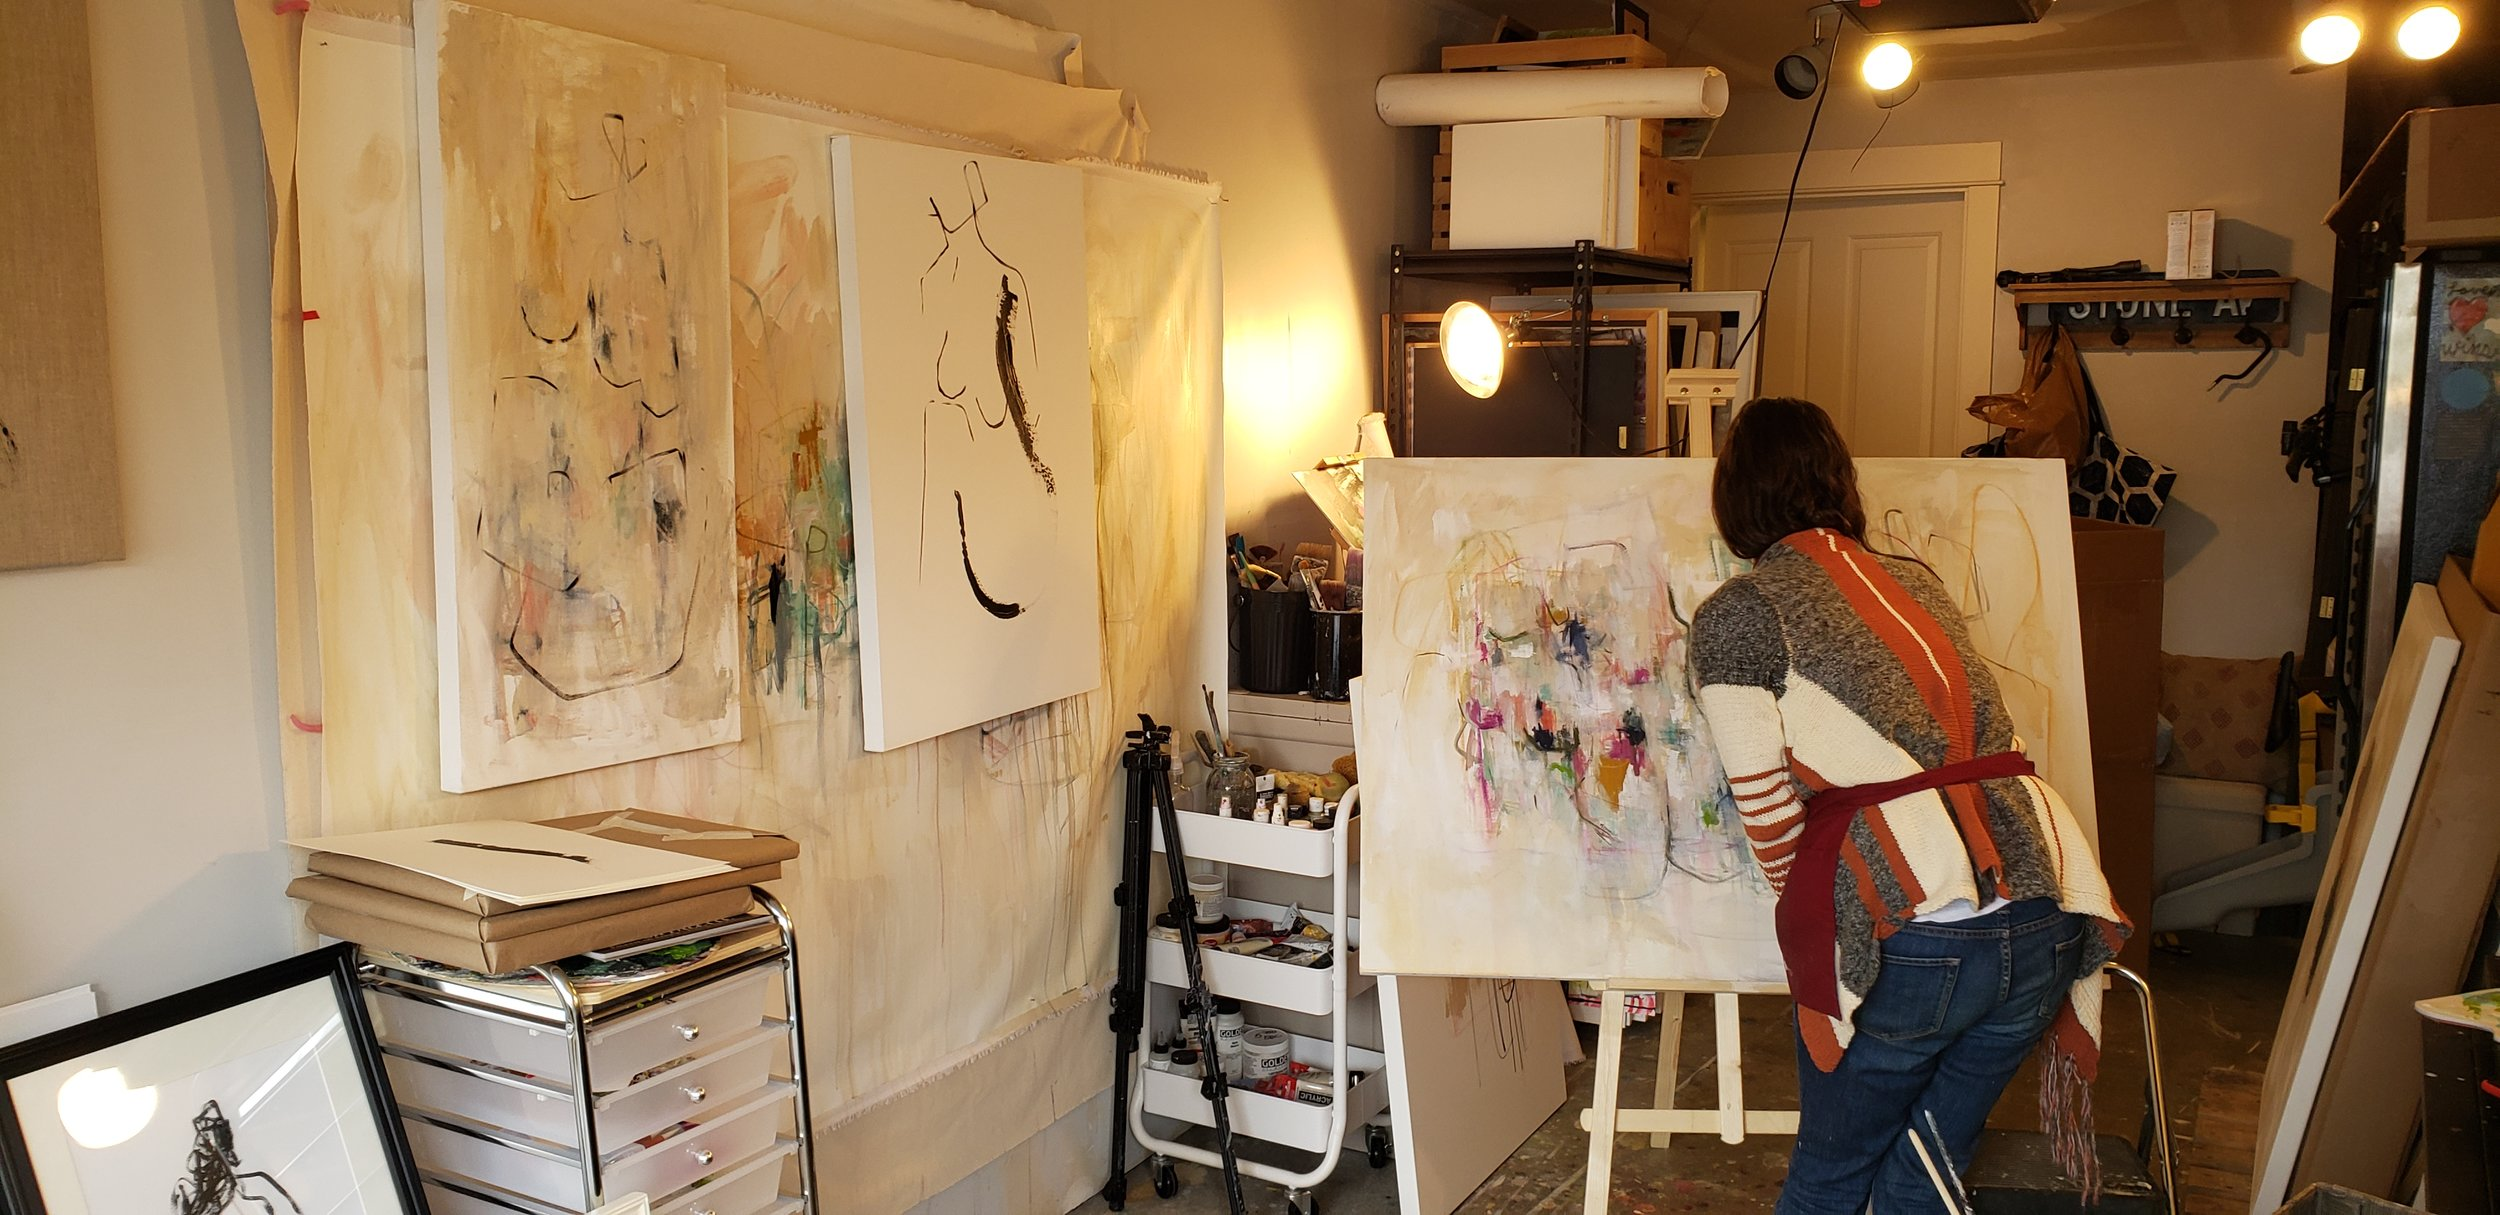 Amy Stone, Seattle Artist, working in her studio. Photo by Puddle & Rain